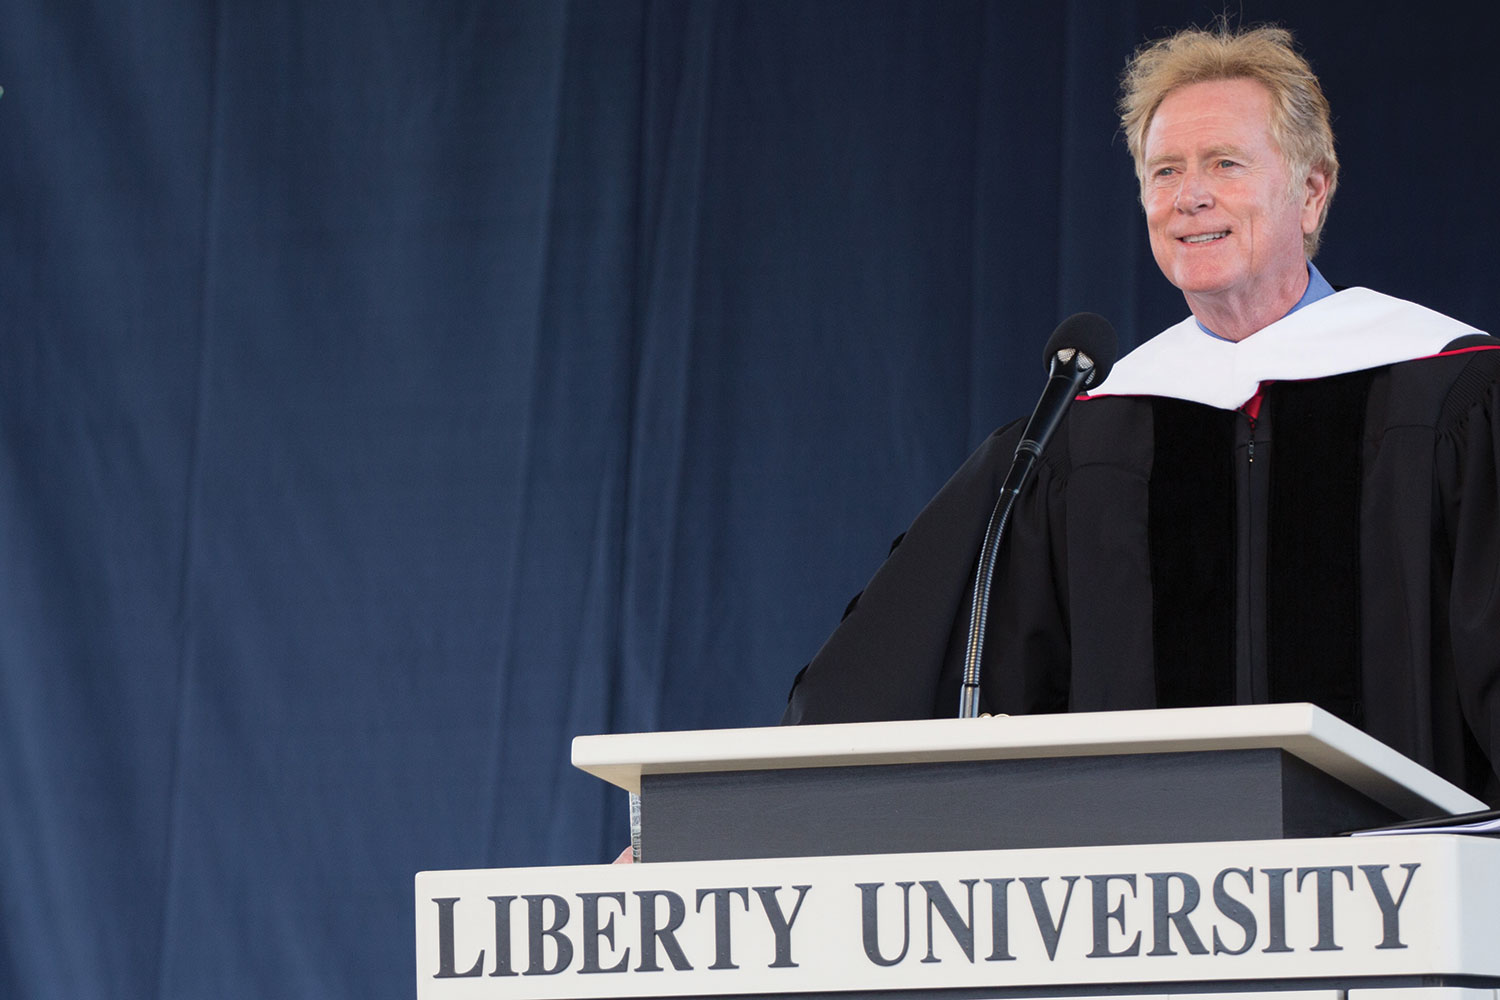 Hollywood screenwriter/director Randall Wallace surprised graduates at Liberty's 43rd Commencement.